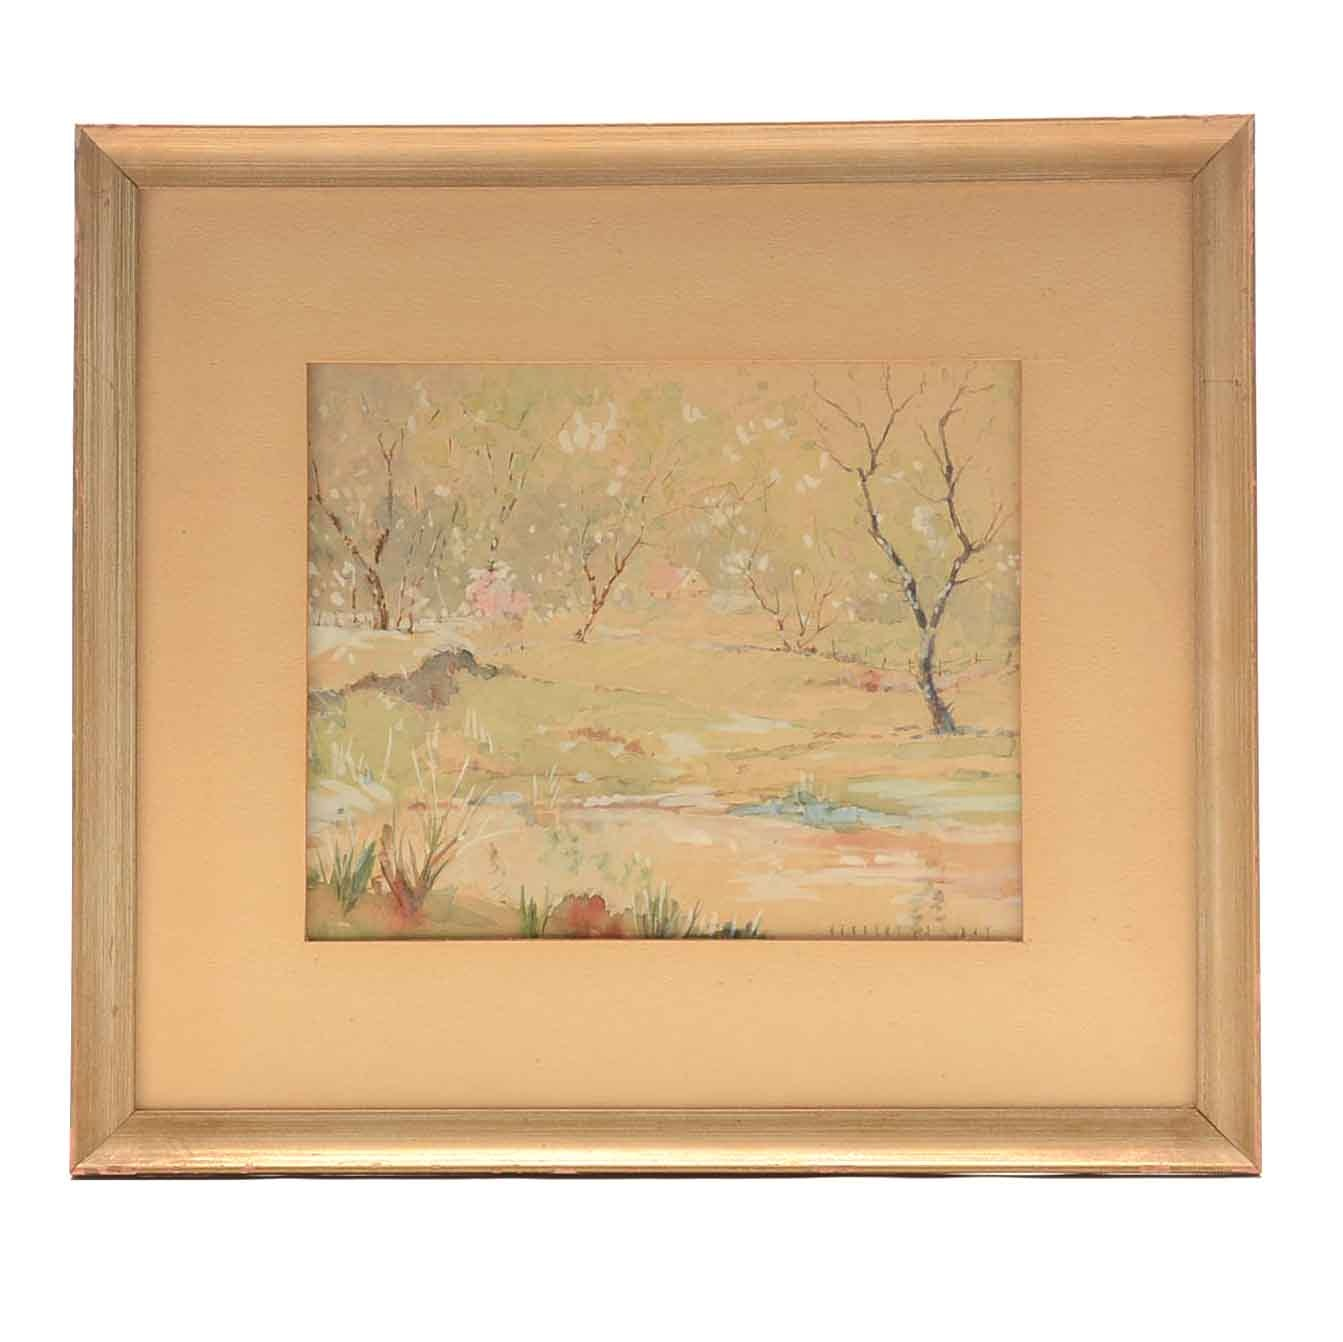 Herbert J. Day Watercolor Painting on Paper of Rural Landscape